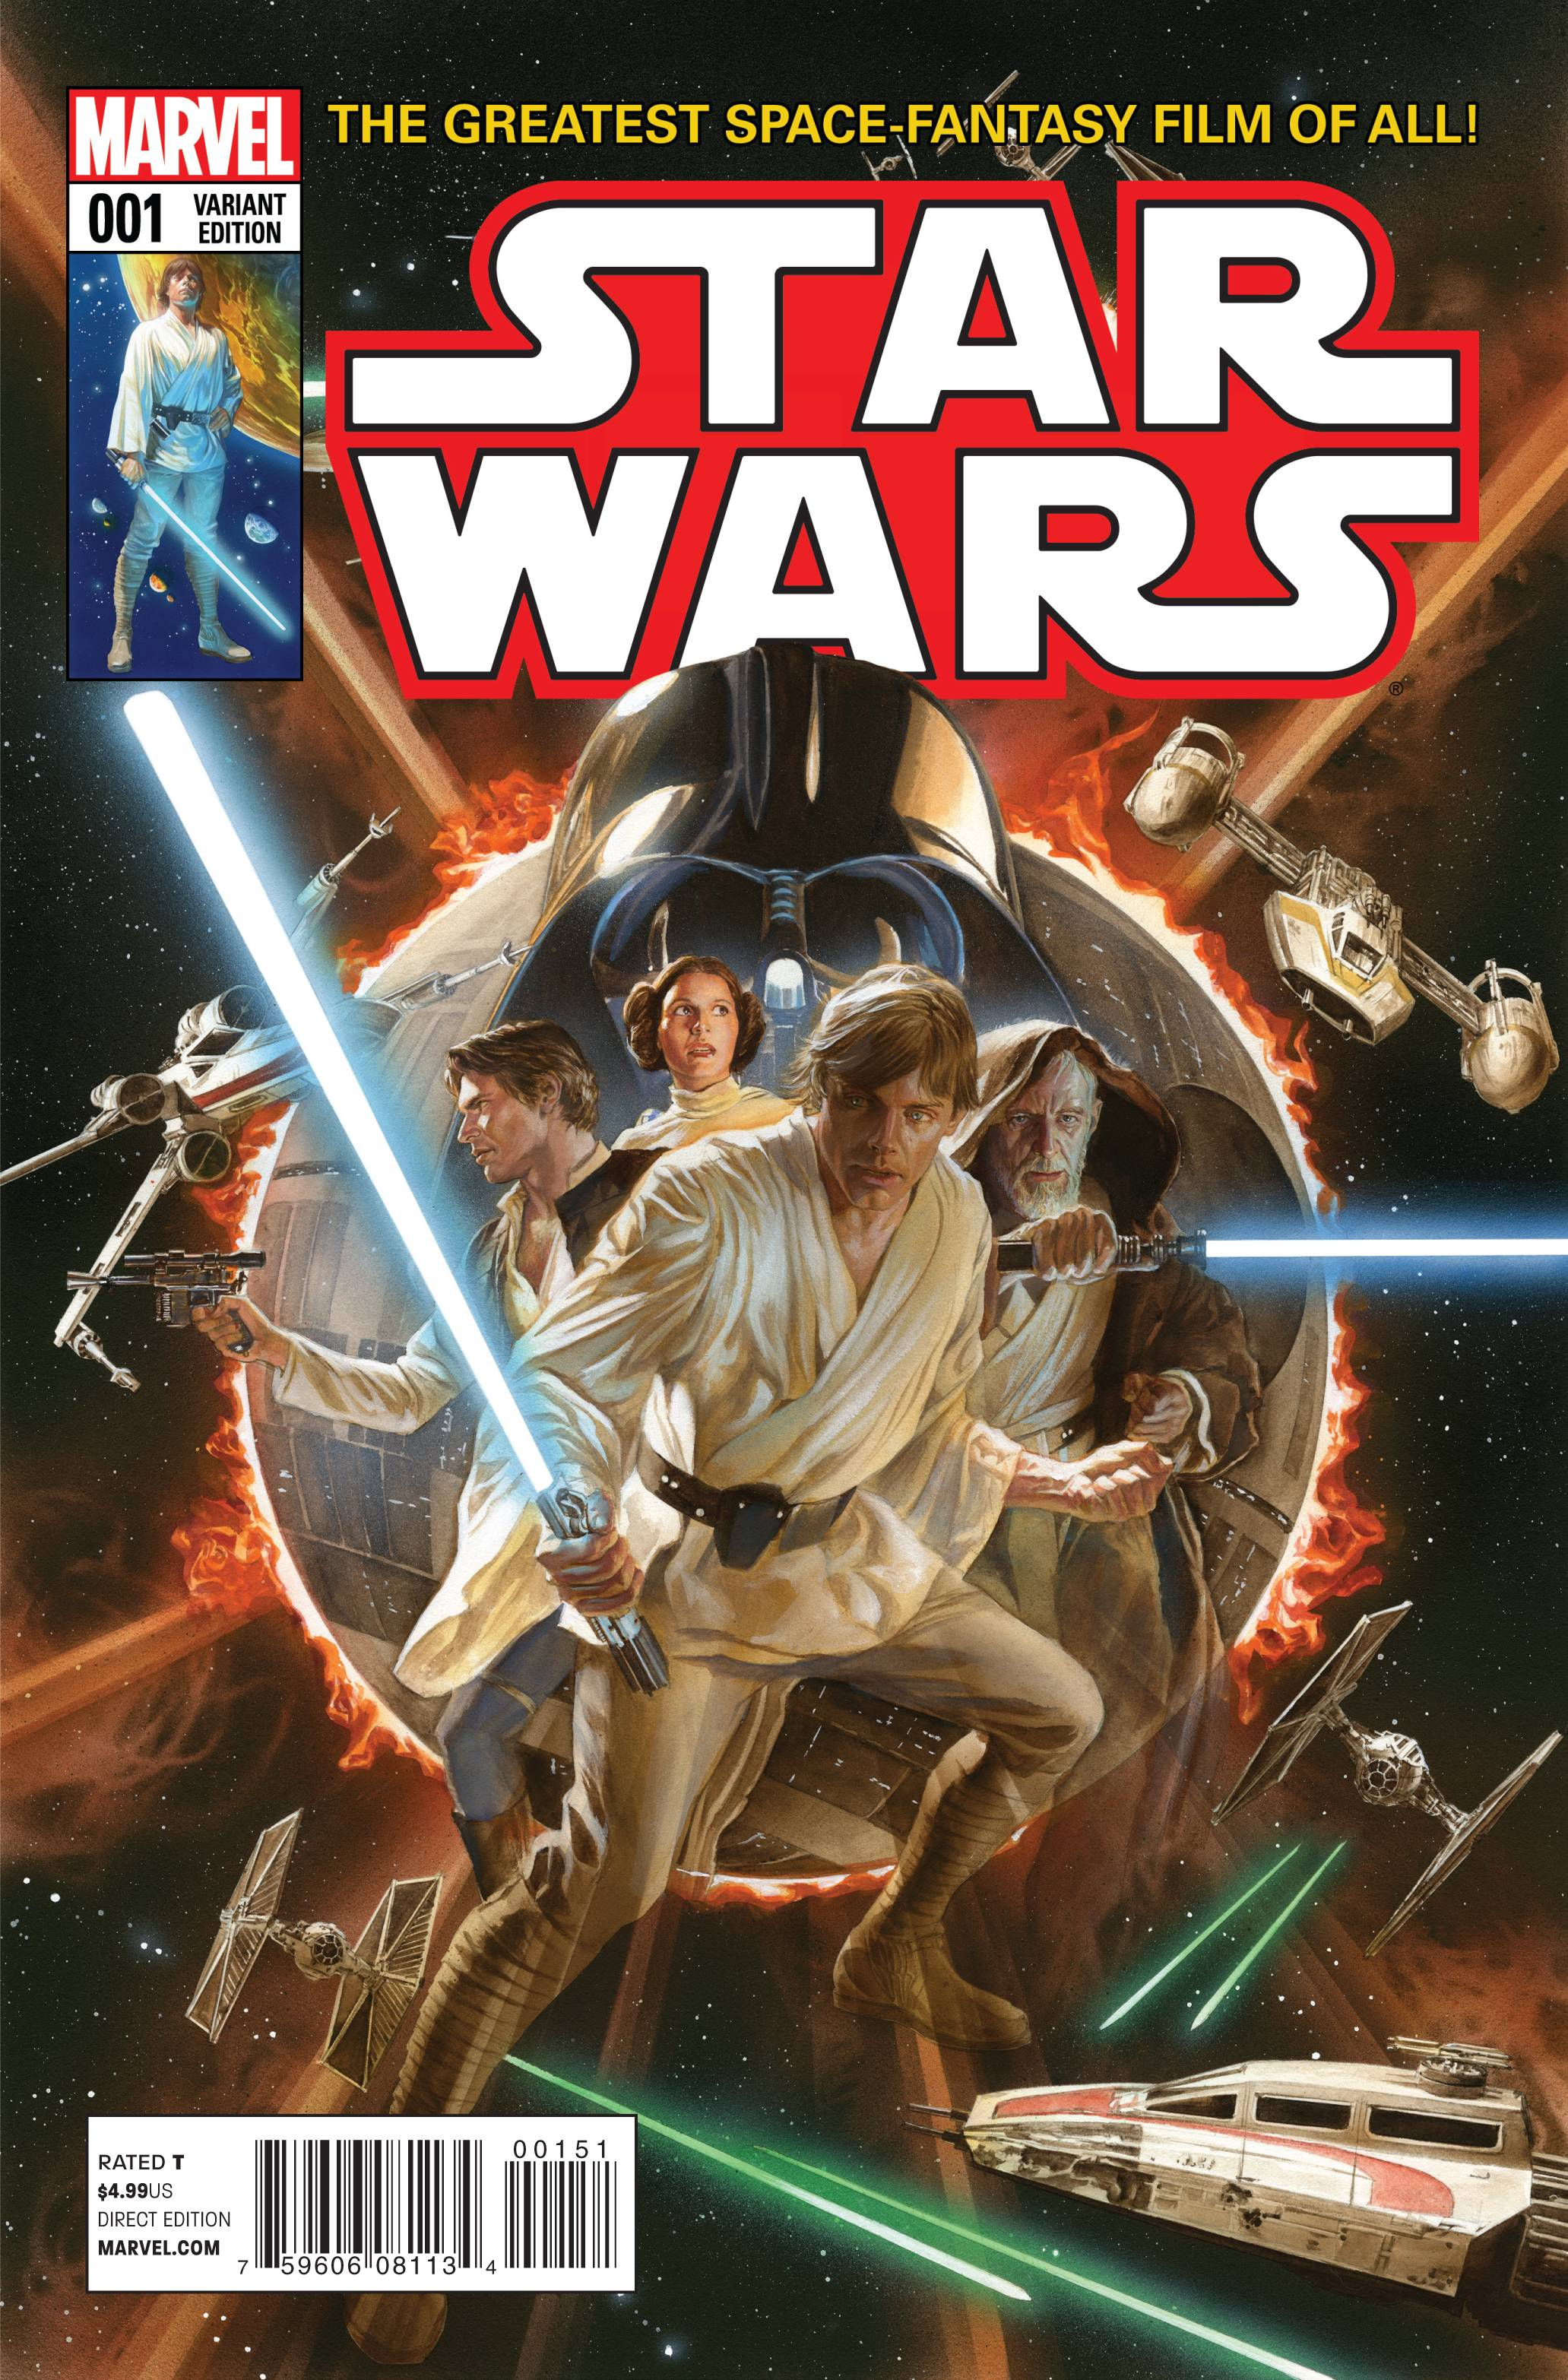 Star Wars #1 (Alex Ross Variant Cover) (14.01.2015)